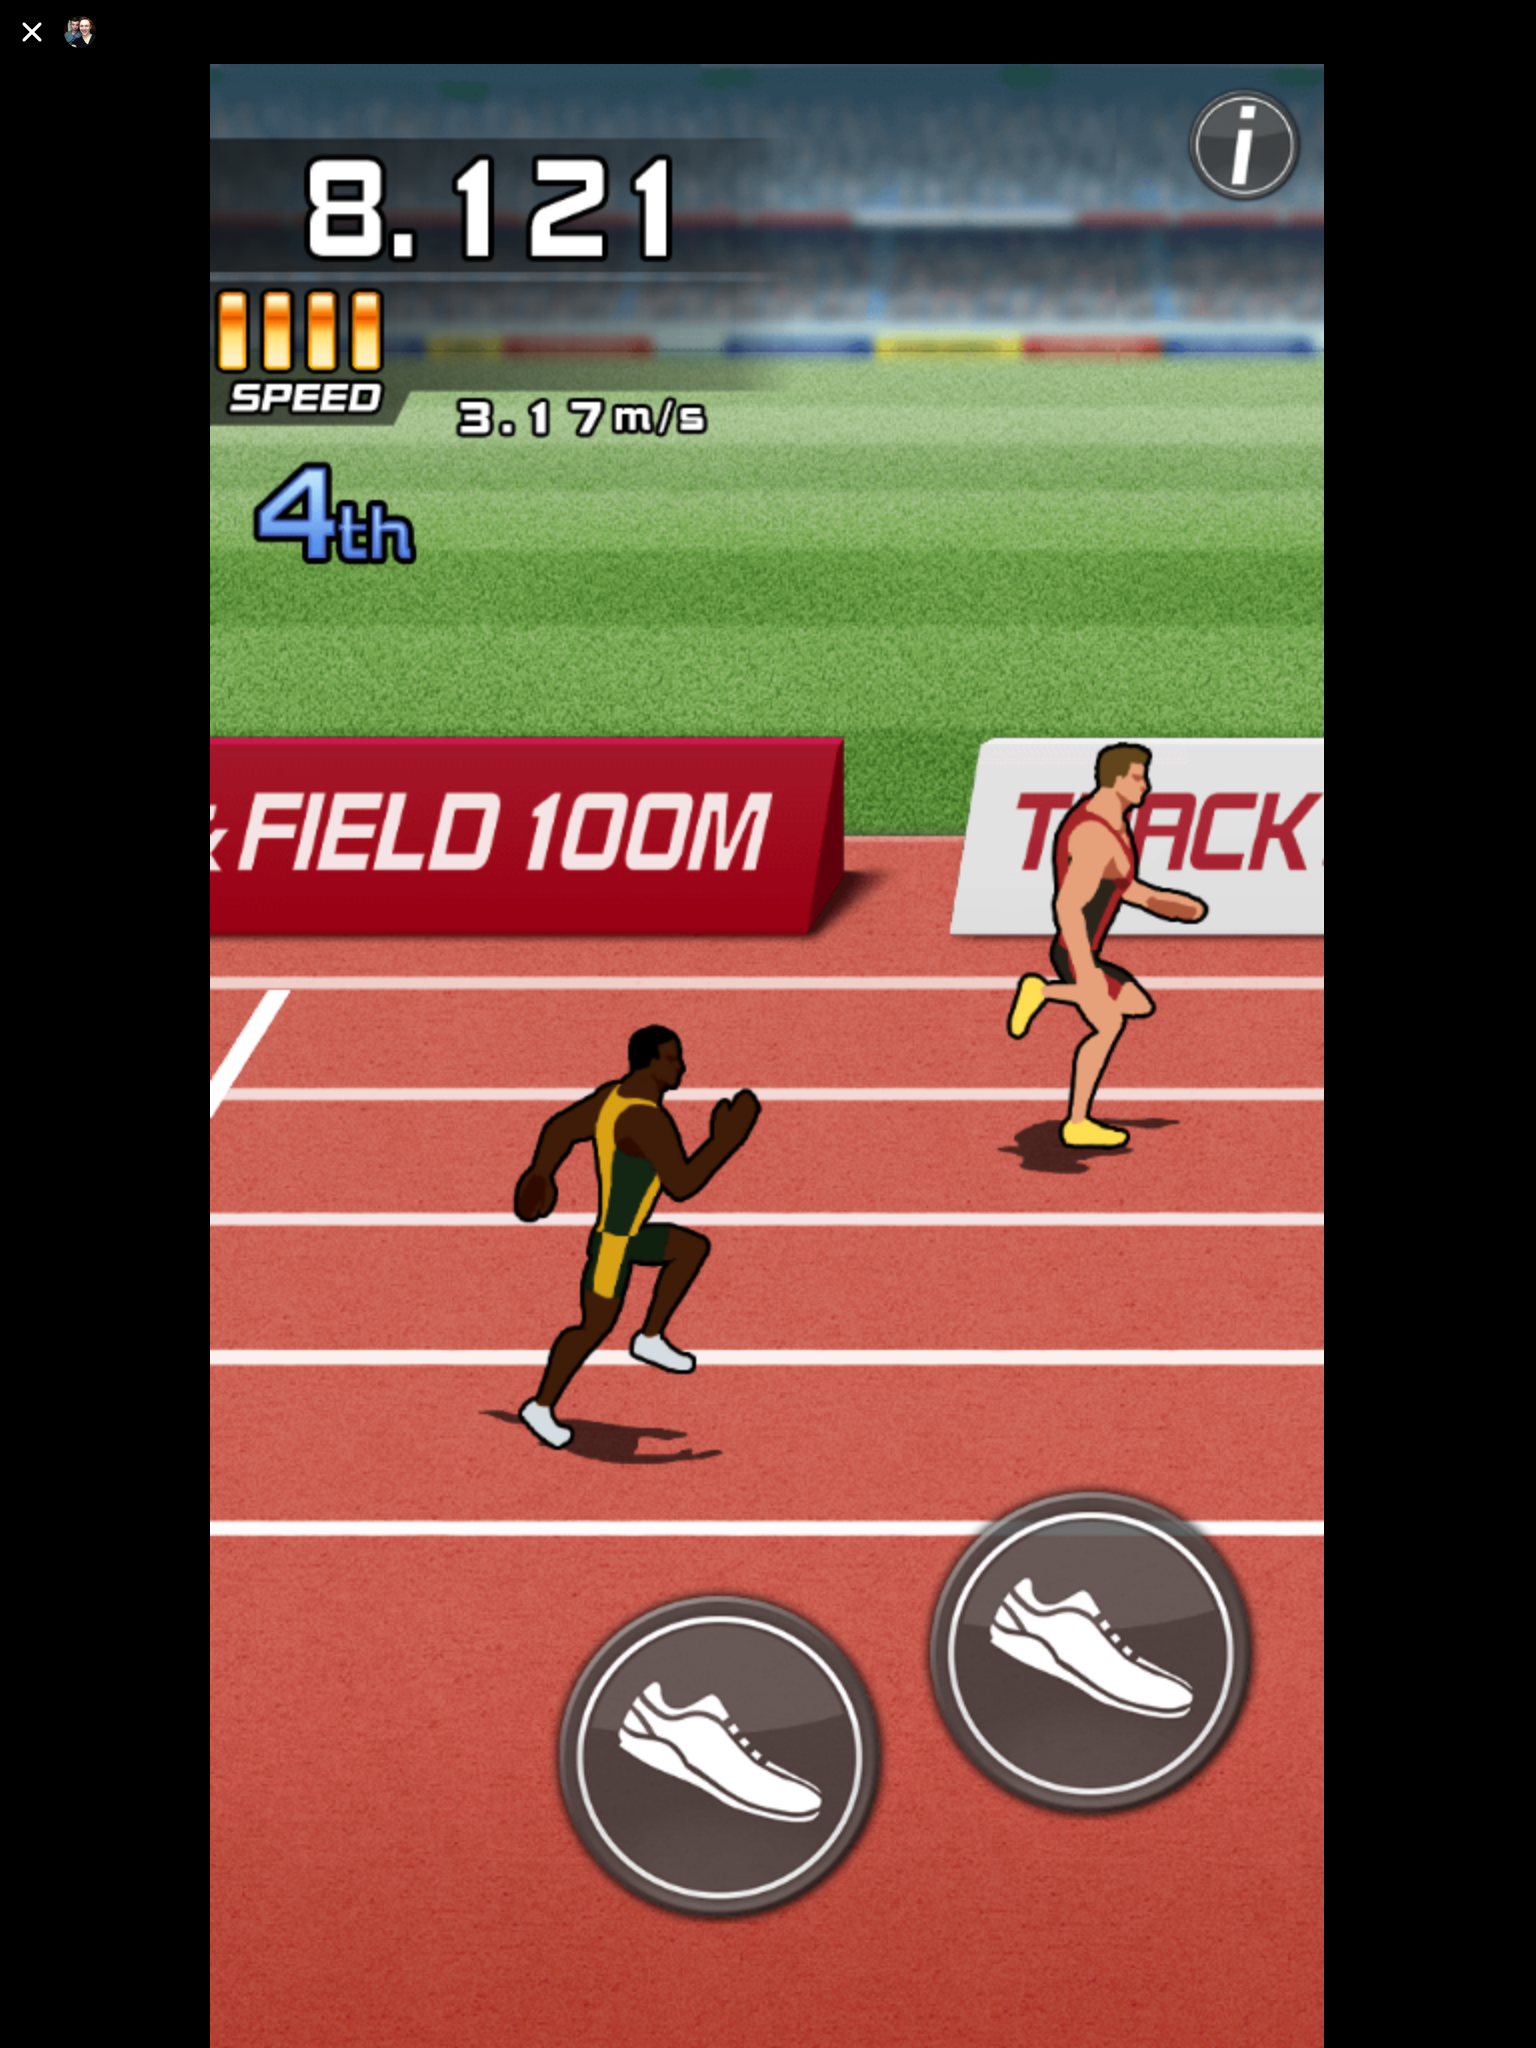 Track and Field 100M Facebook Messenger review